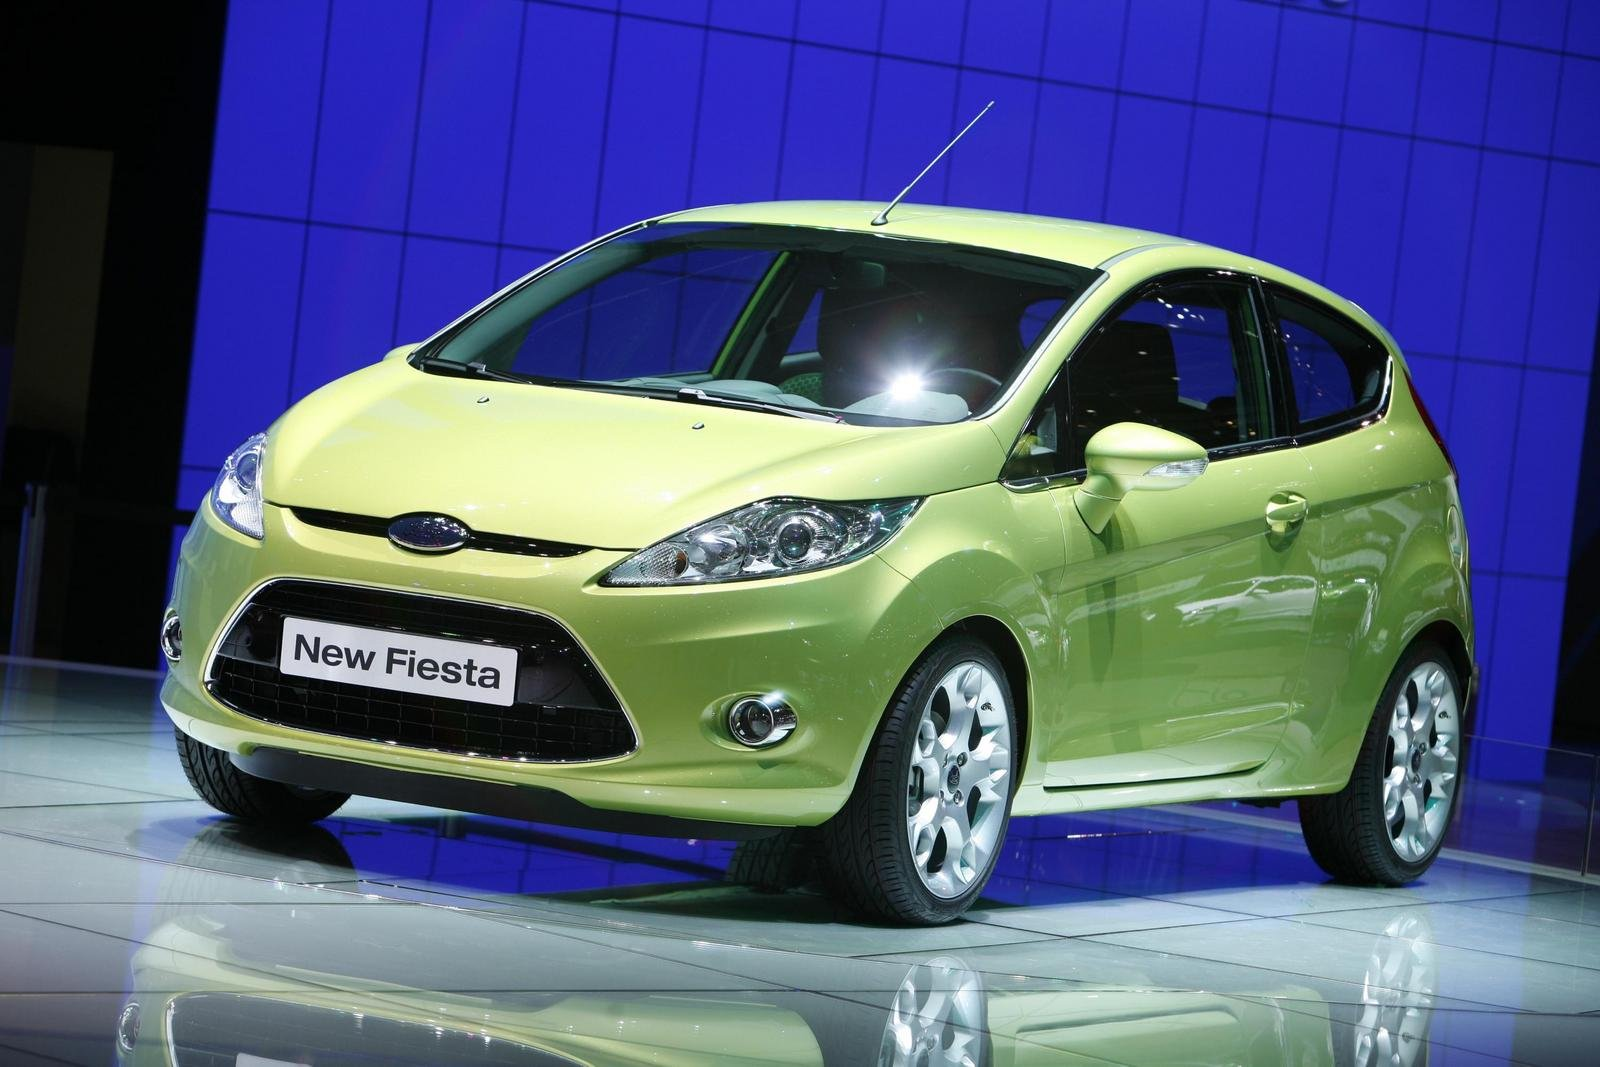 2009 ford fiesta picture 283055 car review top speed. Black Bedroom Furniture Sets. Home Design Ideas